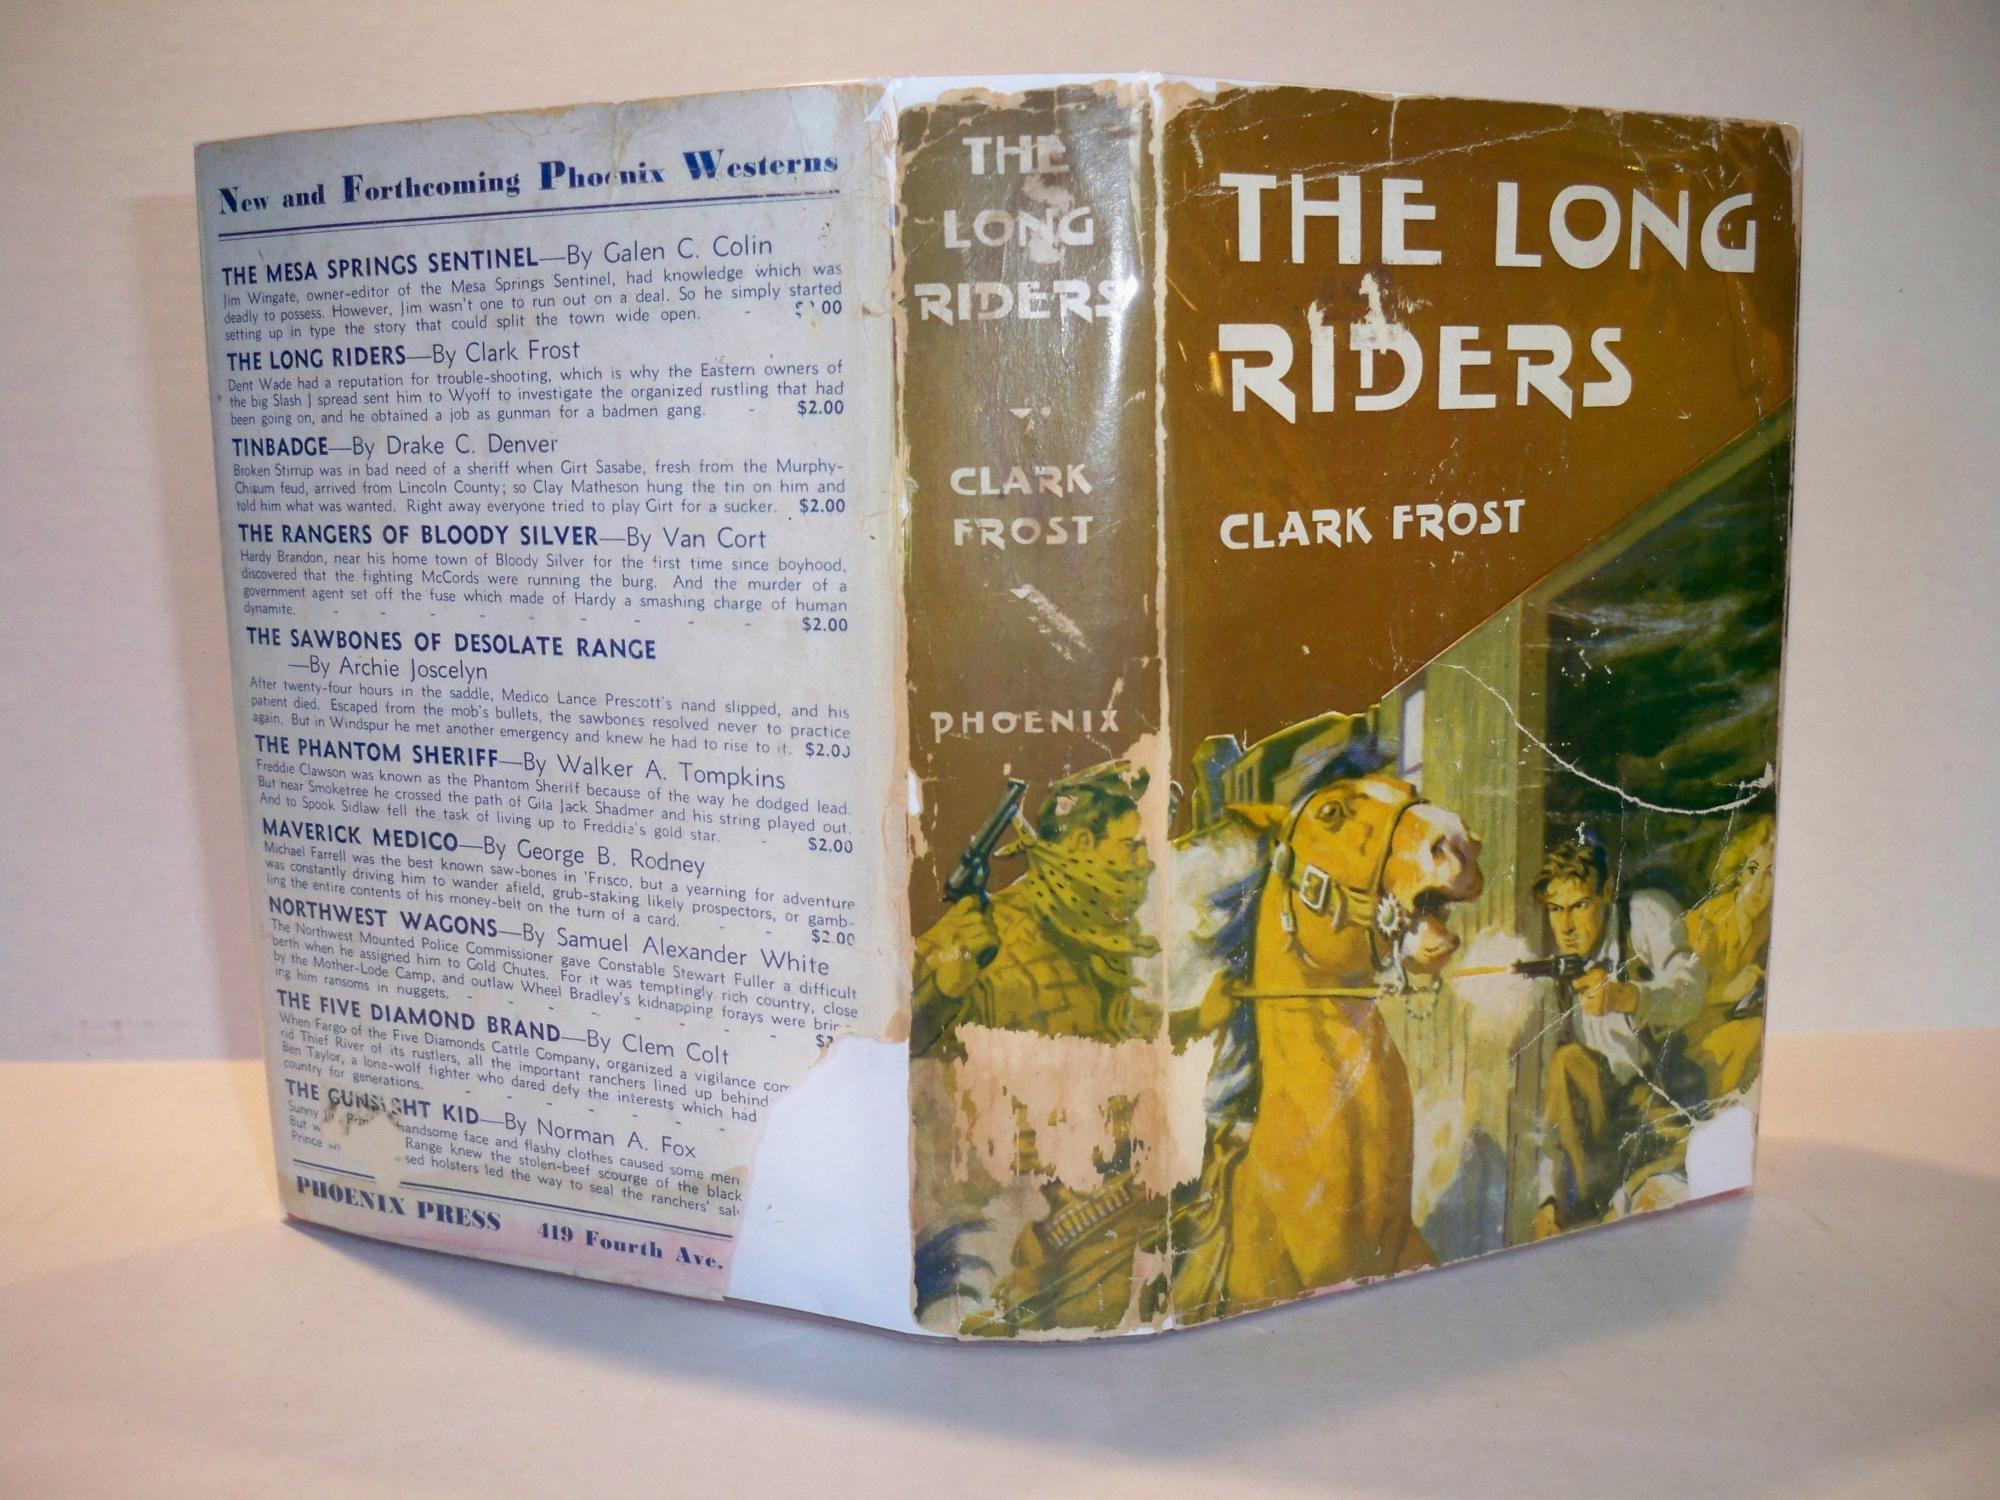 The Long Riders Clark Frost